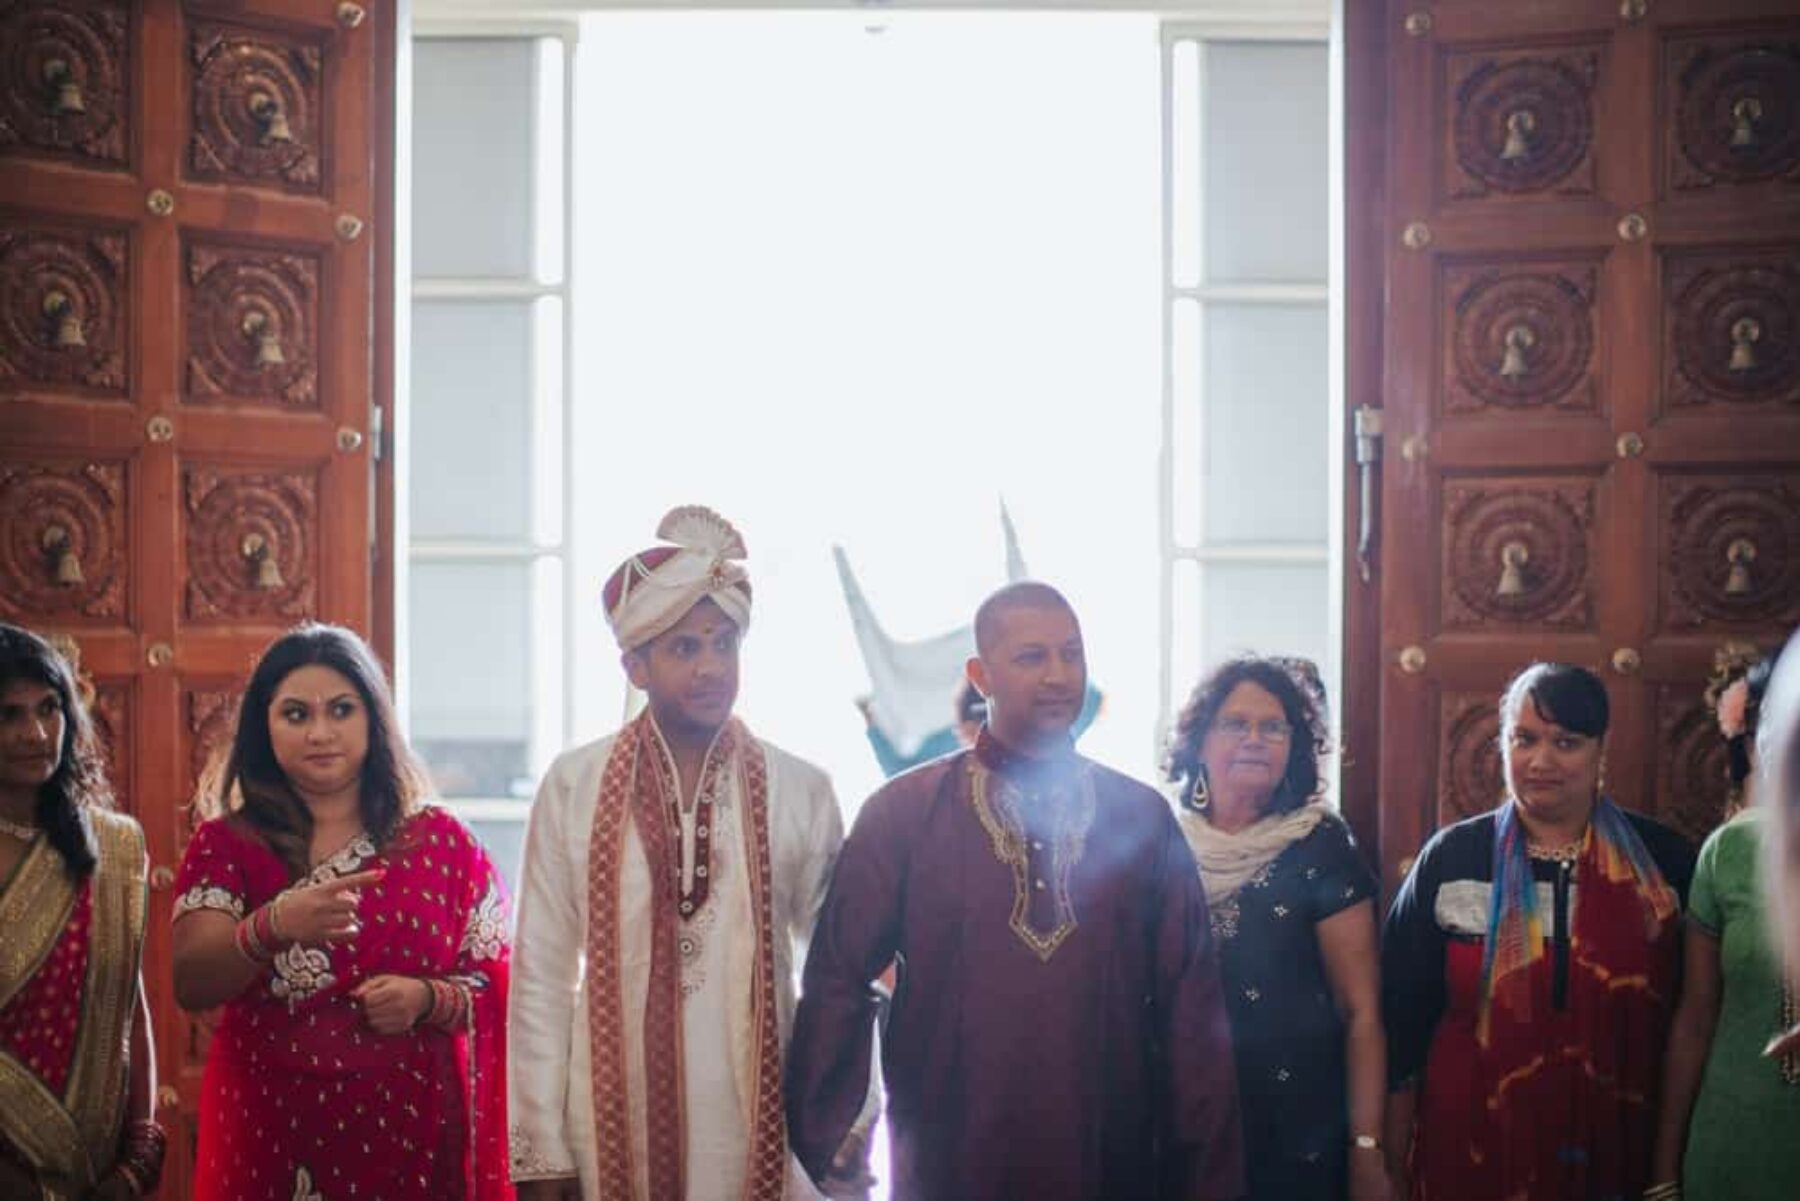 traditional Indian wedding in Melbourne - photography by Lakshal Perera